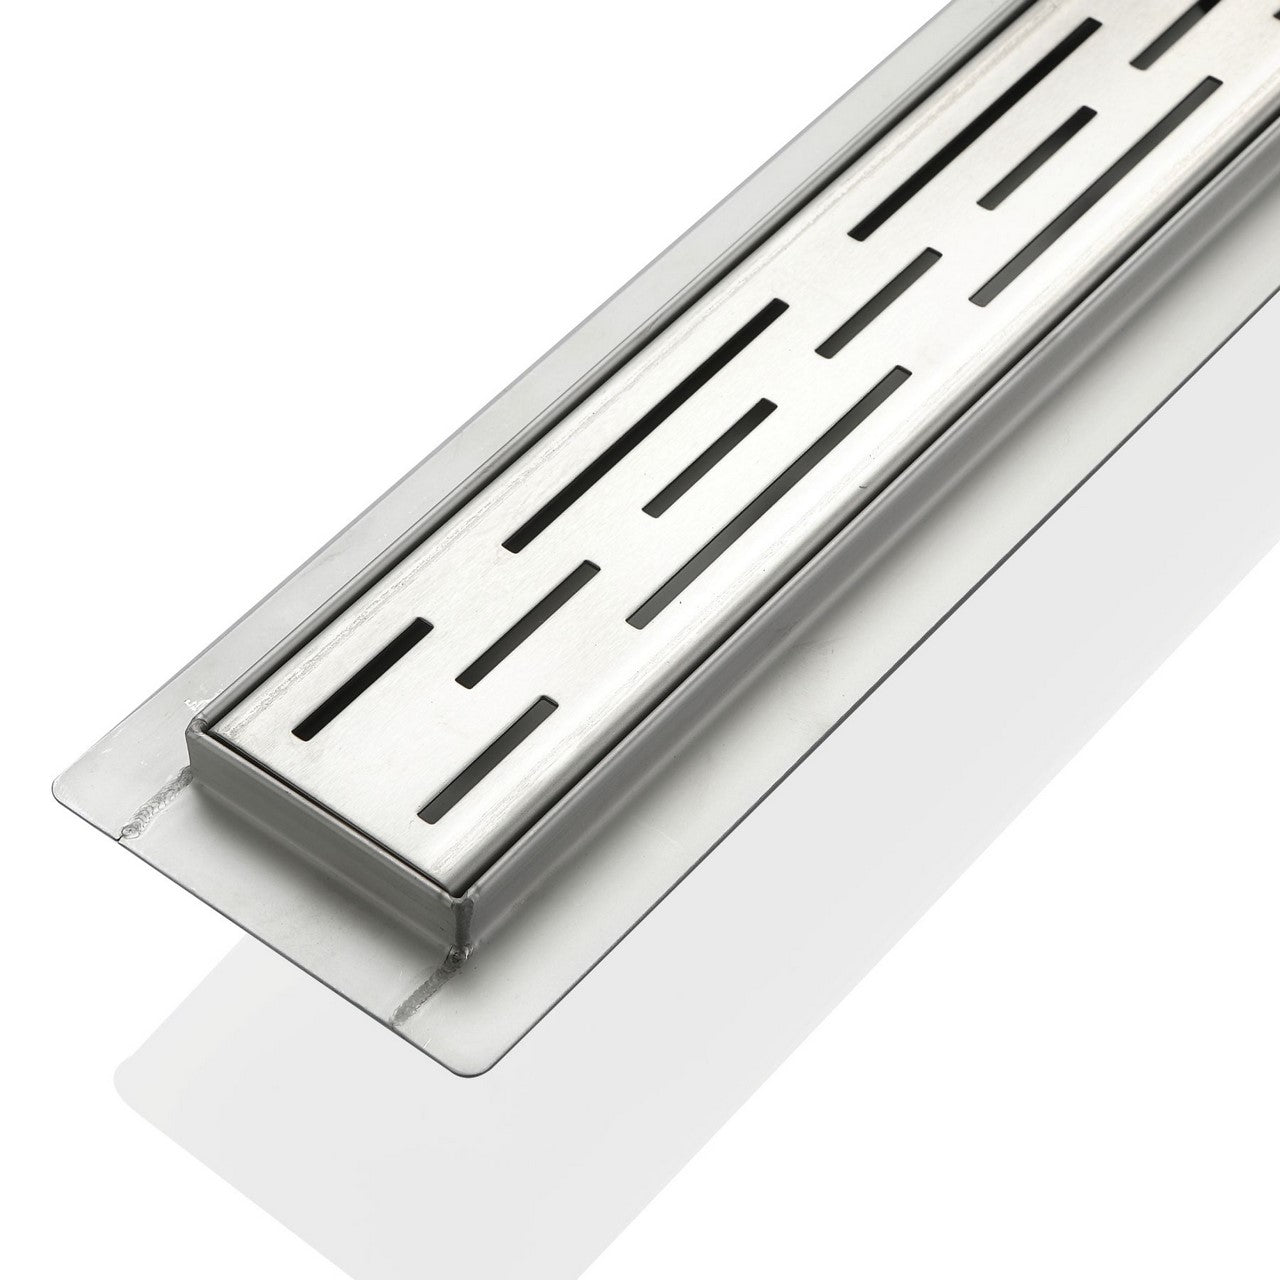 LINEAR GRATE- 36″ Stainless Steel Linear Shower Drain - Construction Commodities Supply Inc.